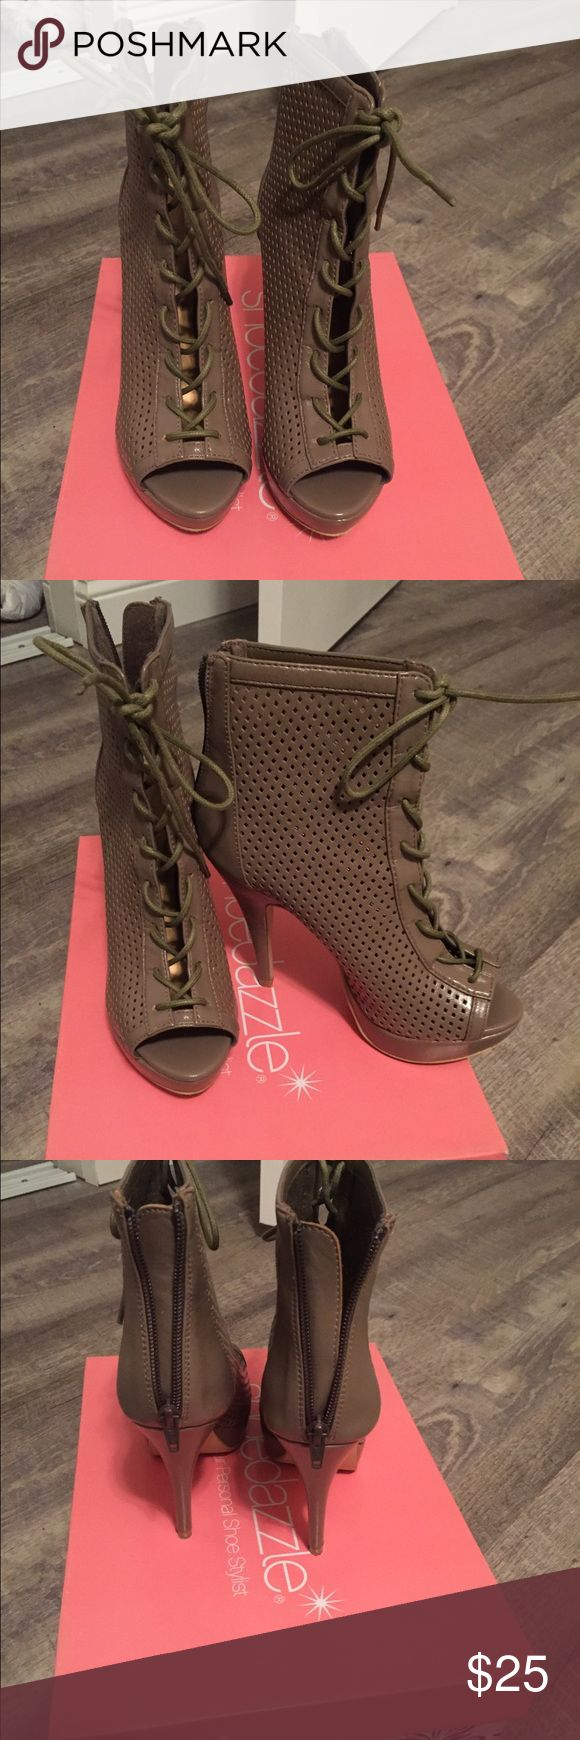 Size 7 shoedazzle heels Shoe dazzle heels, box included, only worn once! Great condition! Shoe Dazzle Shoes Ankle Boots & Booties